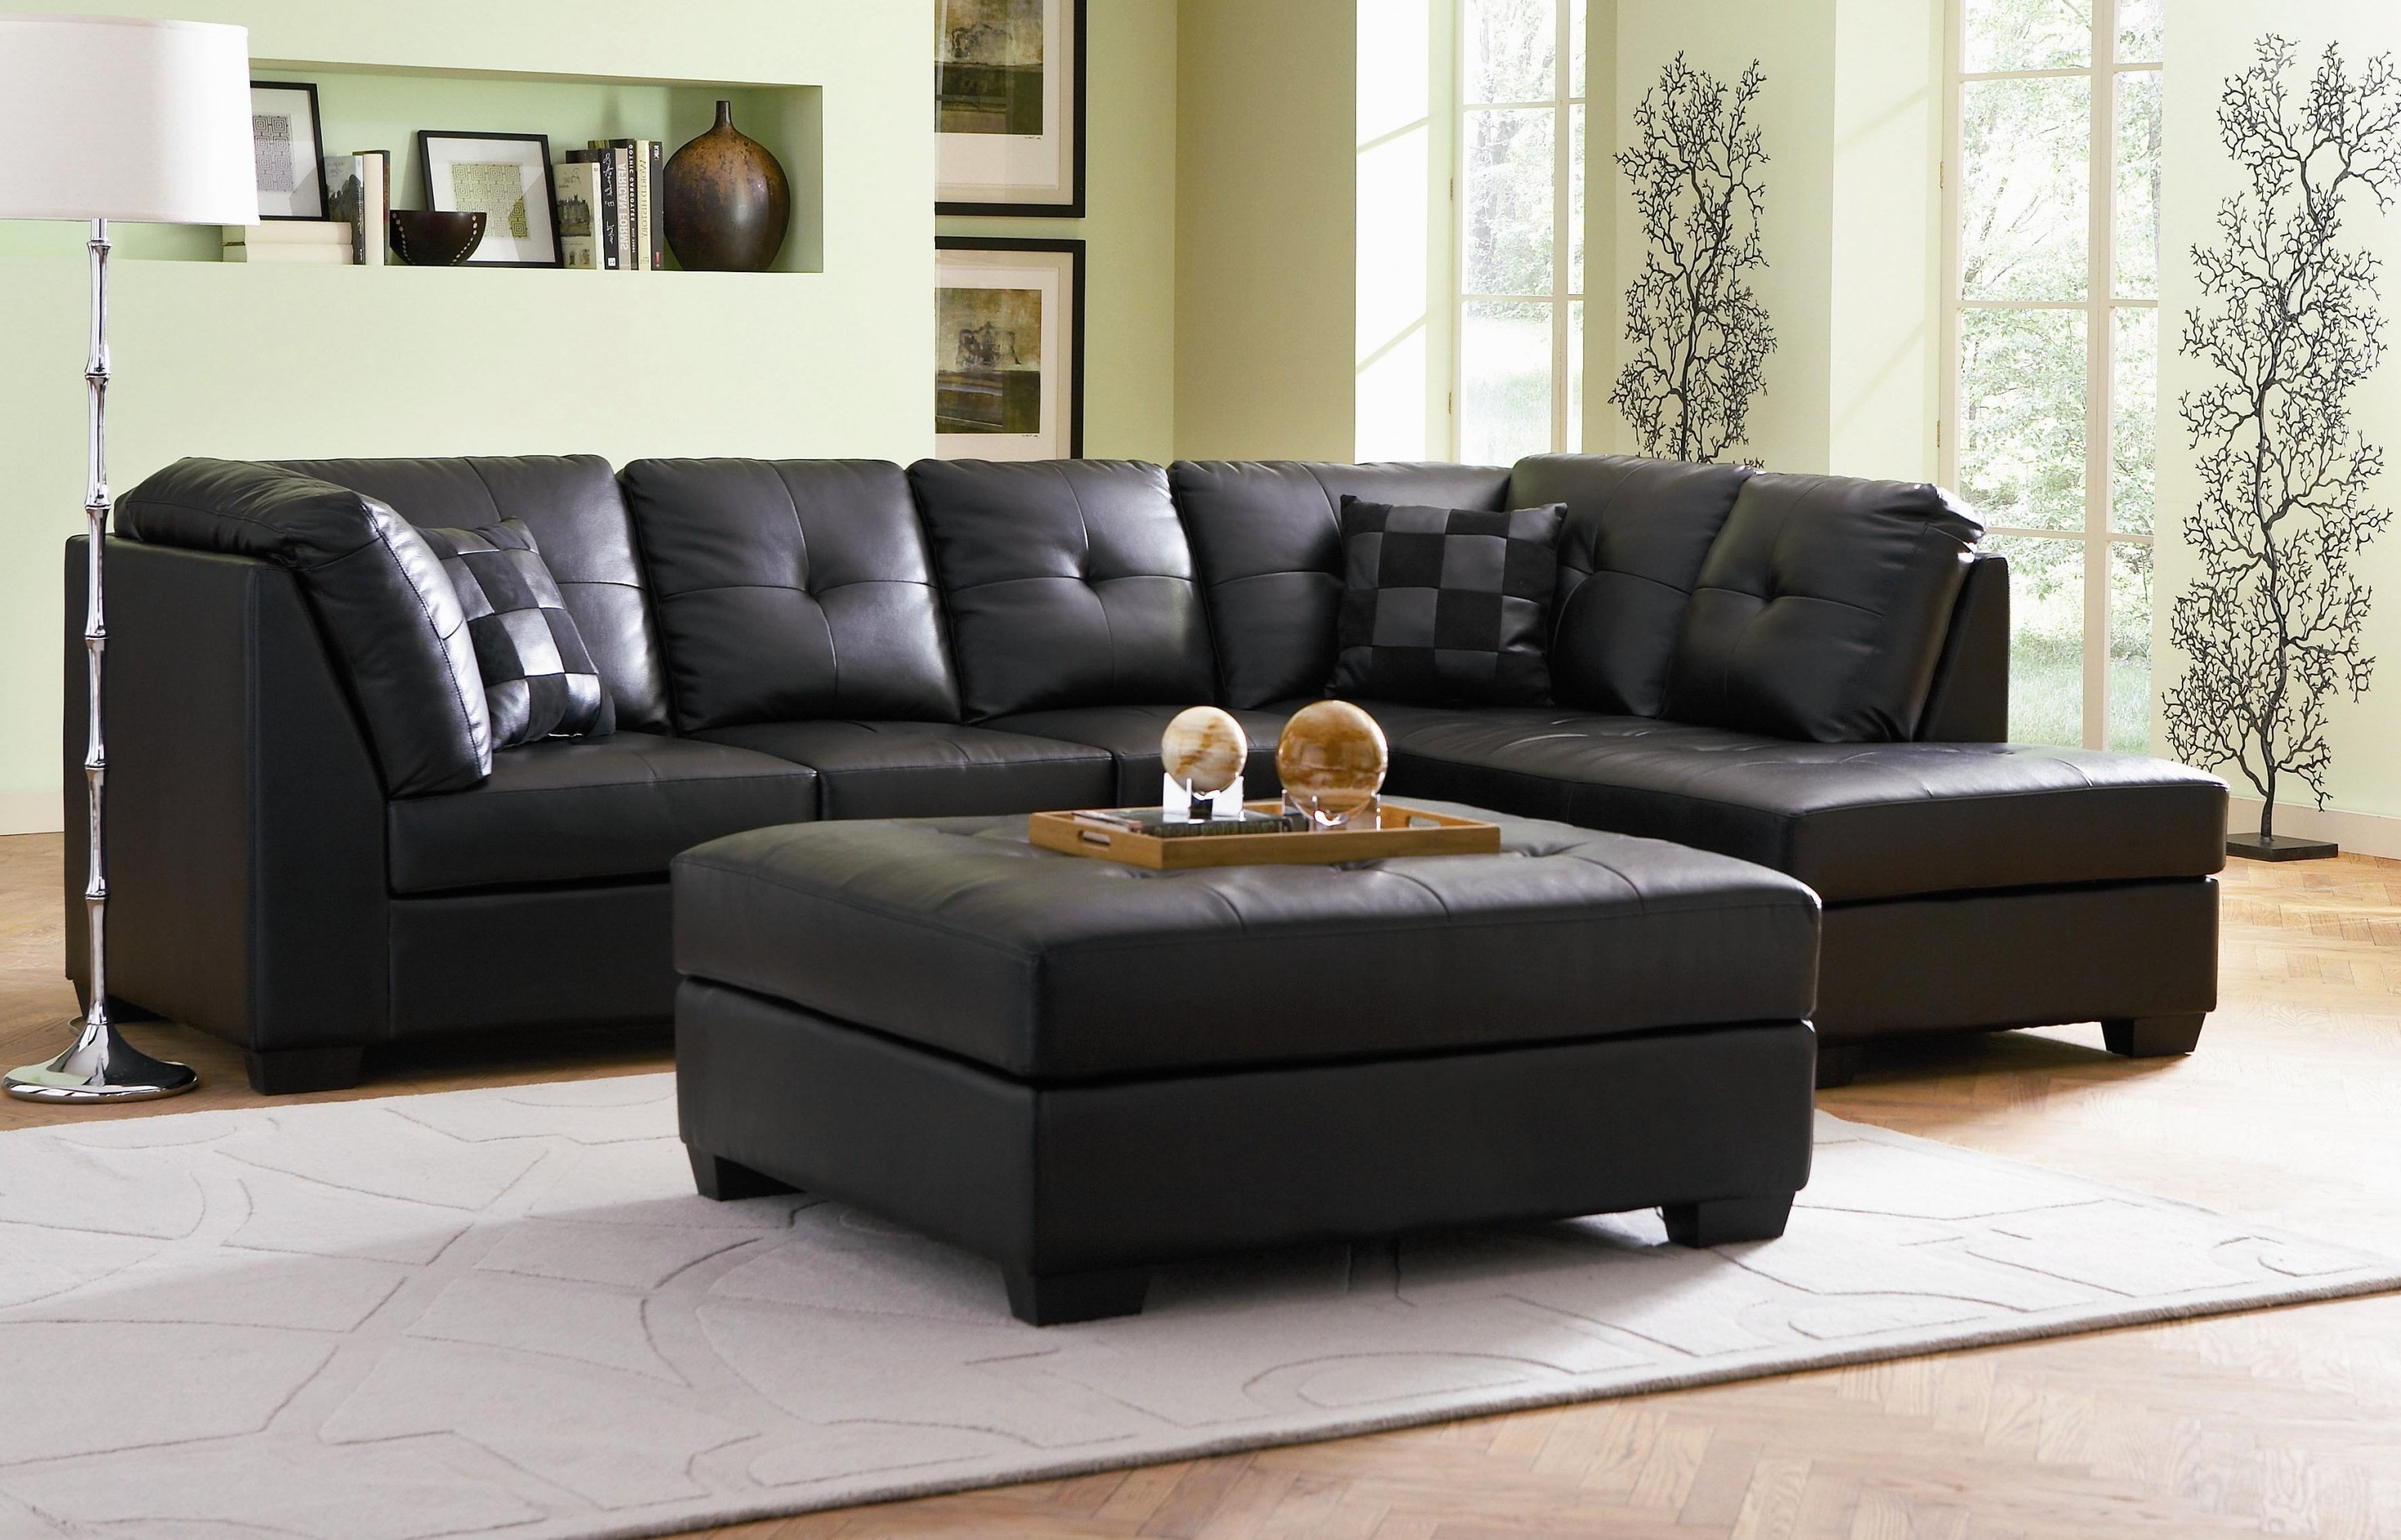 Recent Black Leather Modular Sectional Sofa With Ikea Ottoman With Regard For Leather Modular Sectional Sofas (View 13 of 15)